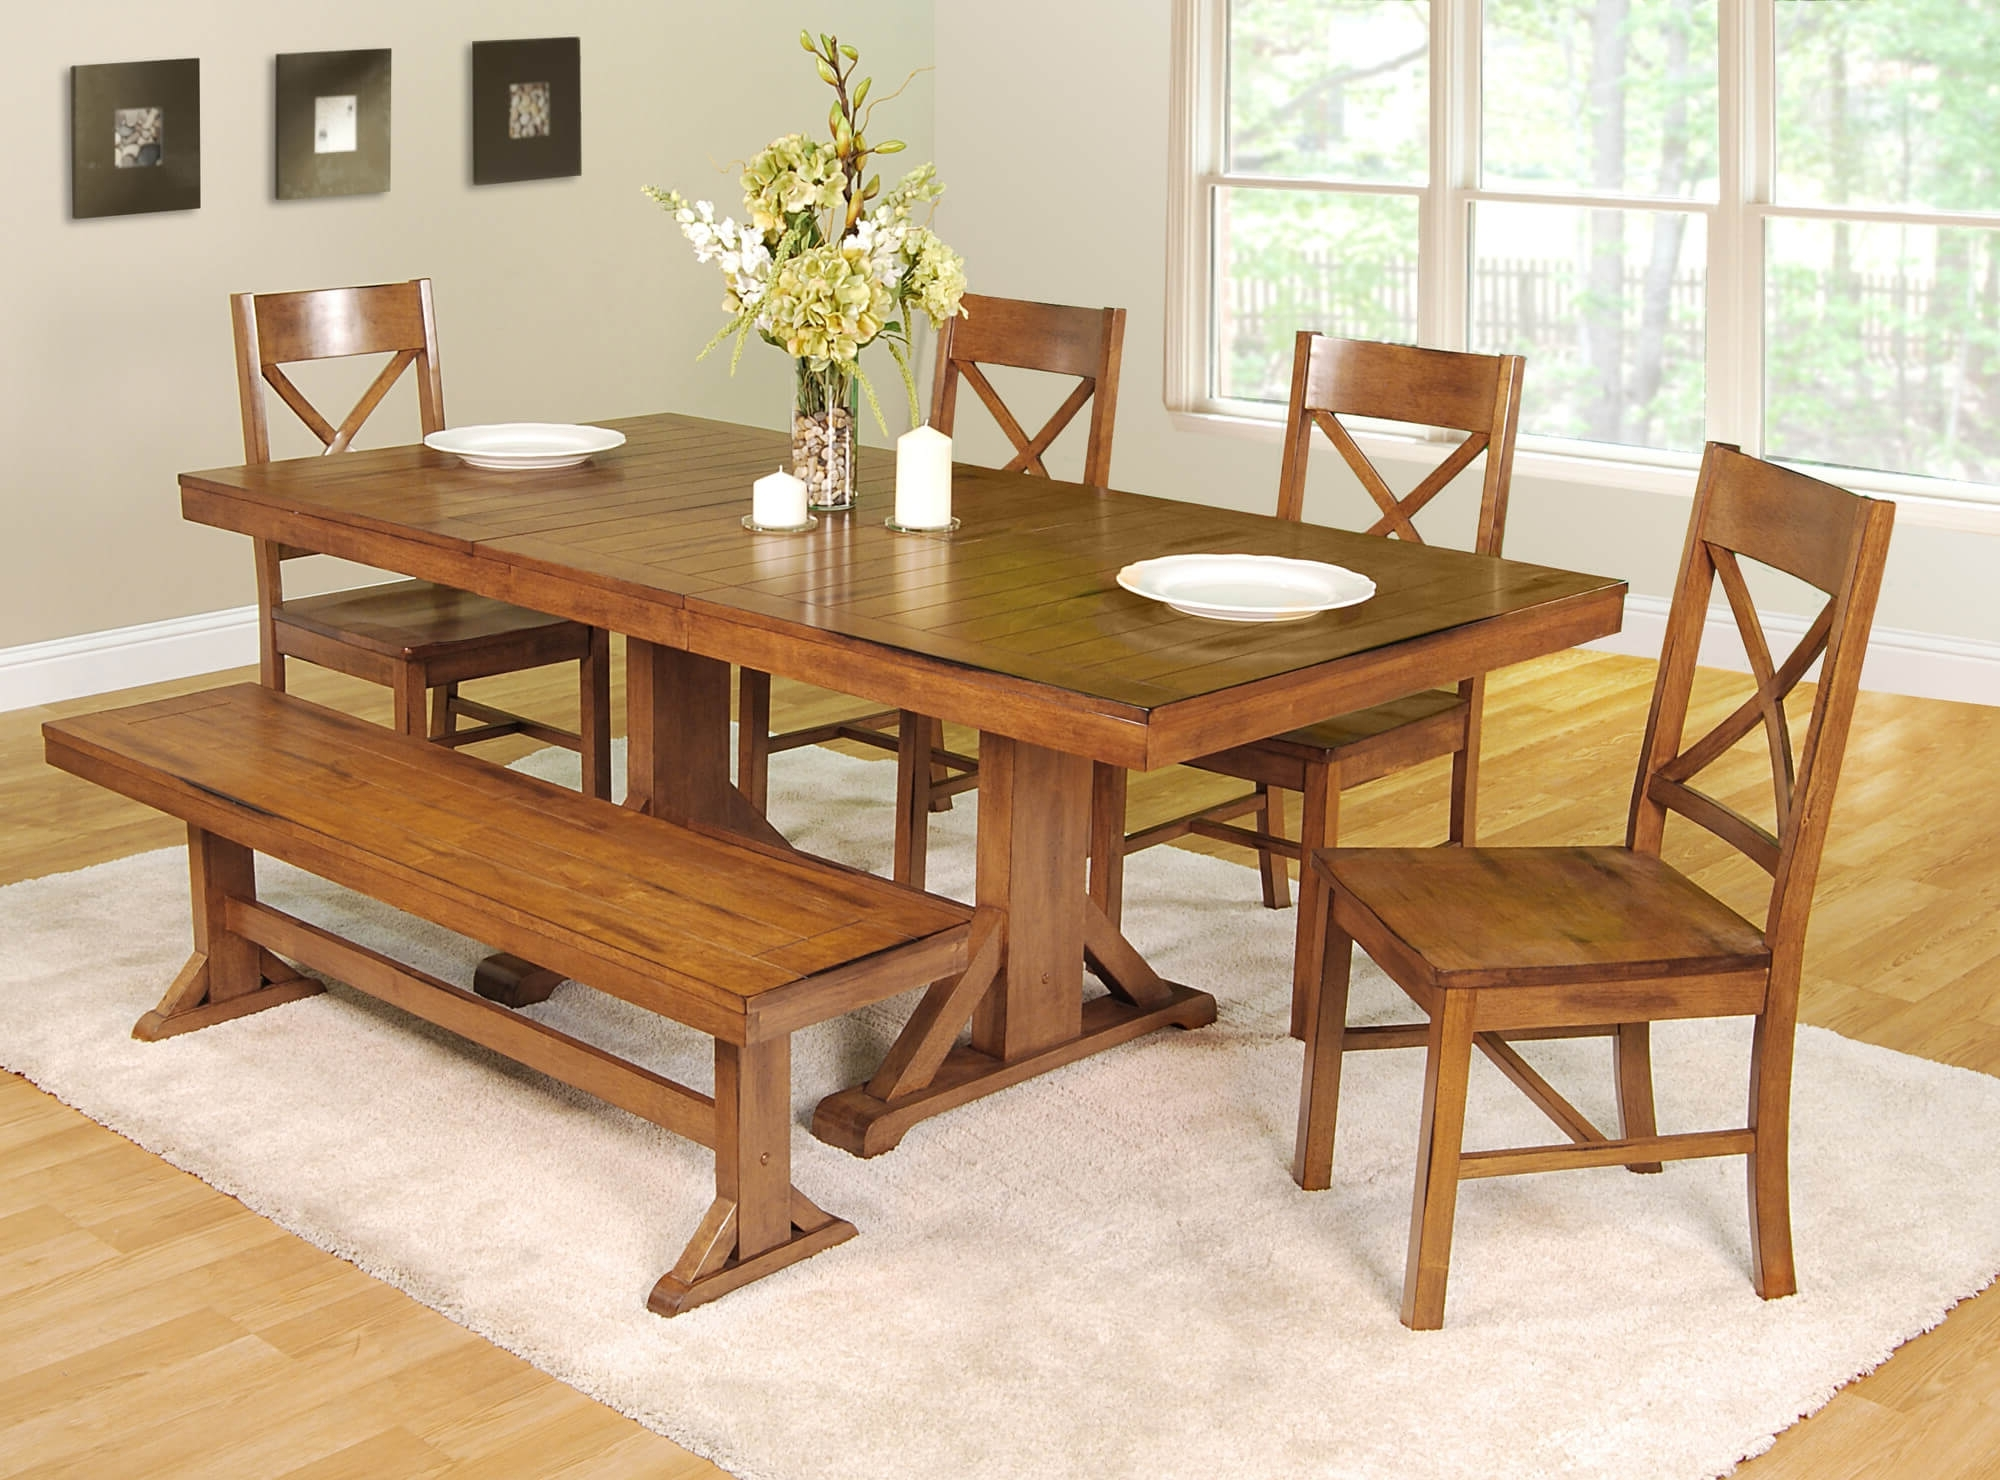 Most Recent Small Dining Tables And Bench Sets Pertaining To 26 Dining Room Sets (Big And Small) With Bench Seating (2018) (View 13 of 25)